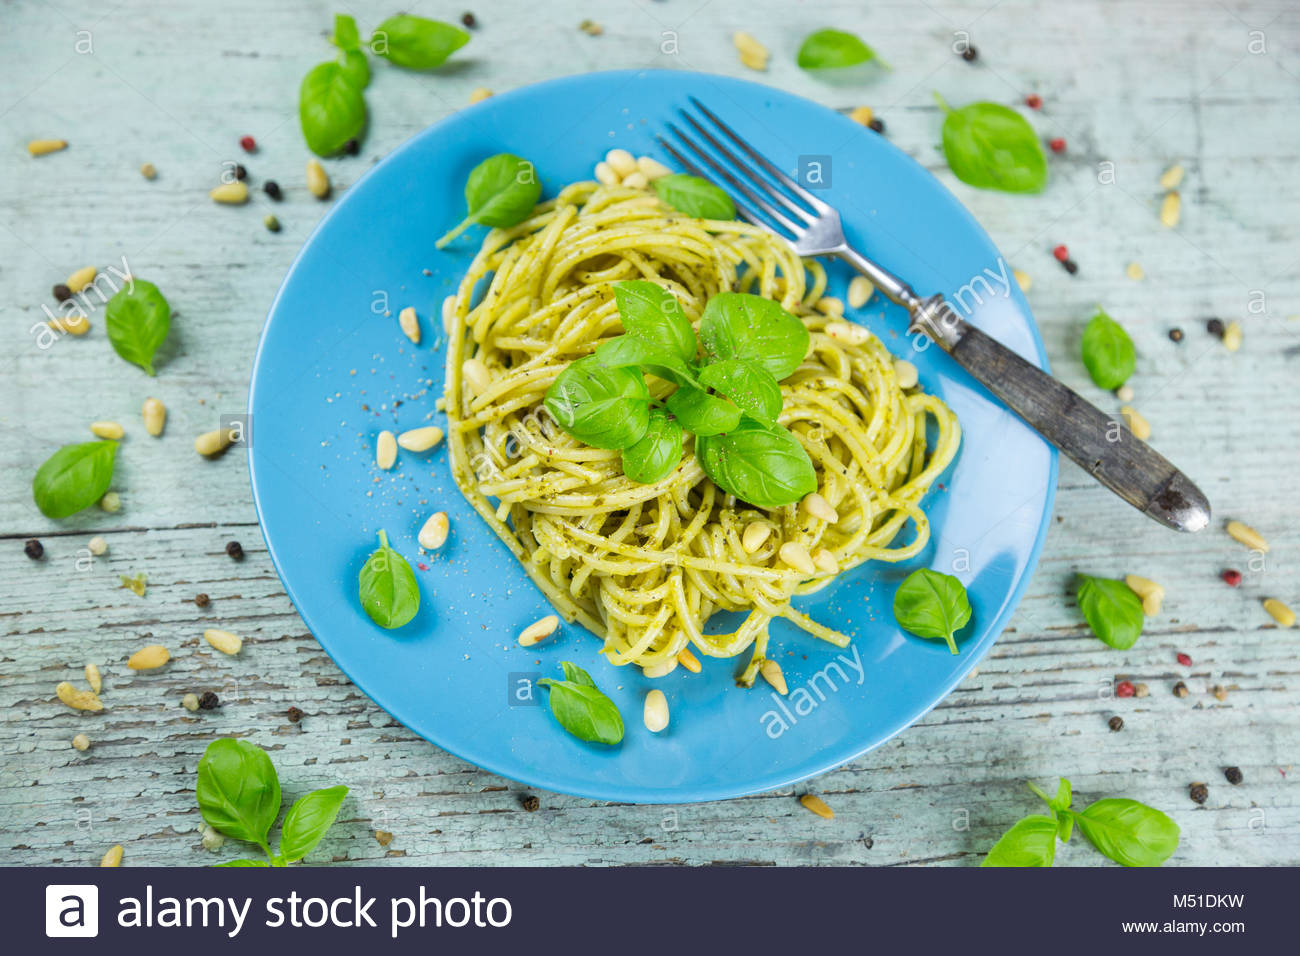 Plate of cooked spaghetti pasta with green pesto - Stock Image